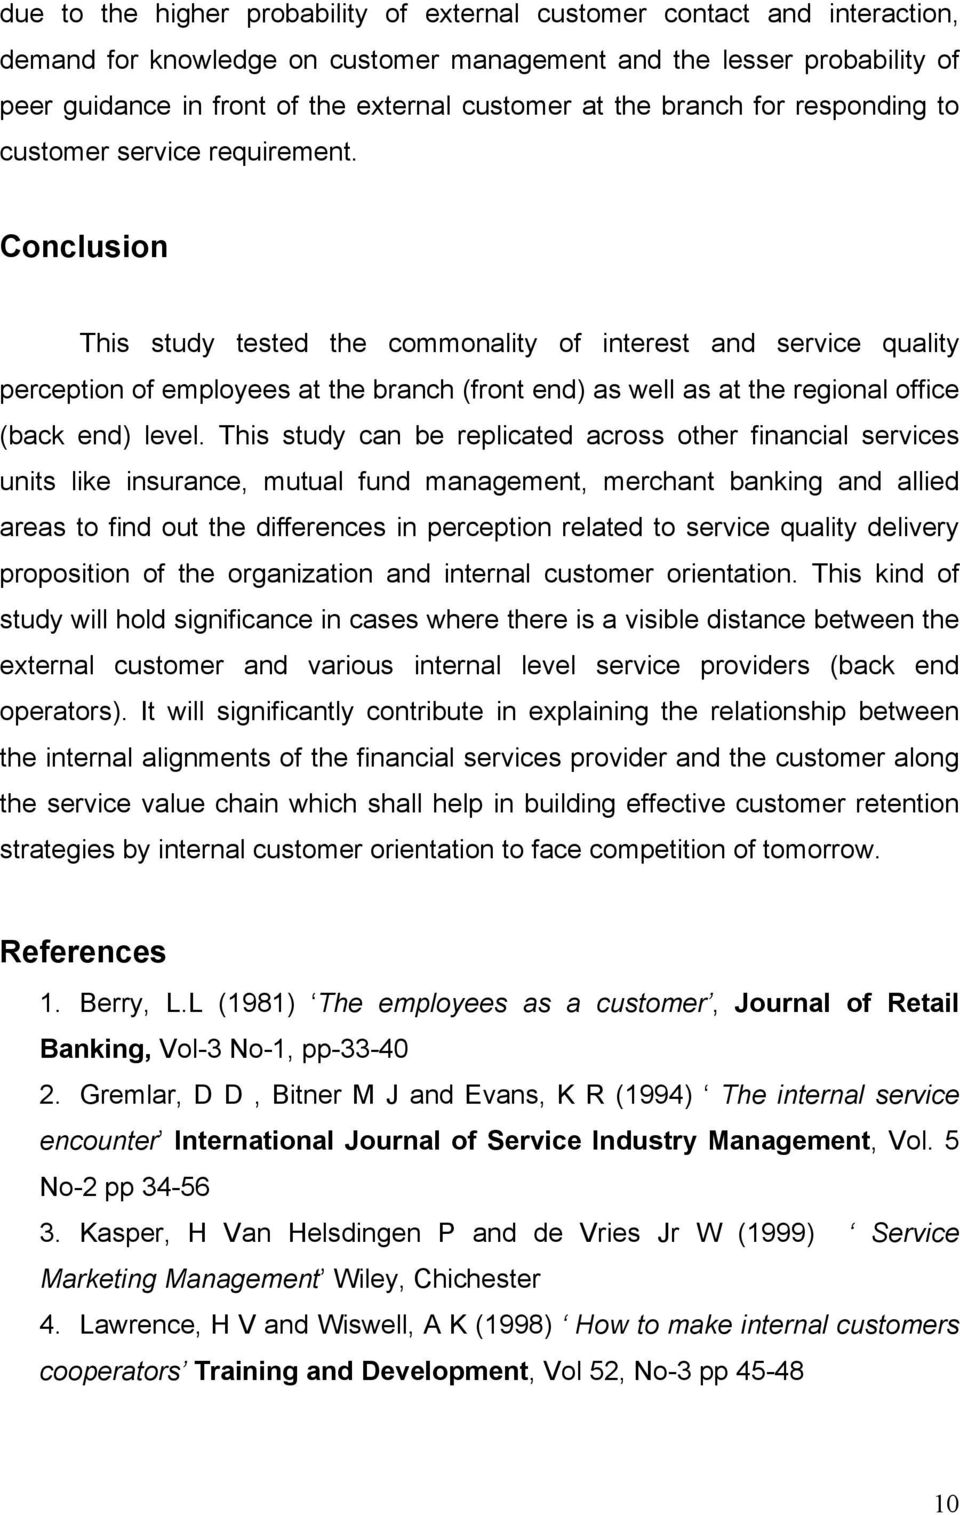 Conclusion This study tested the commonality of interest and service quality perception of employees at the branch (front end) as well as at the regional office (back end) level.